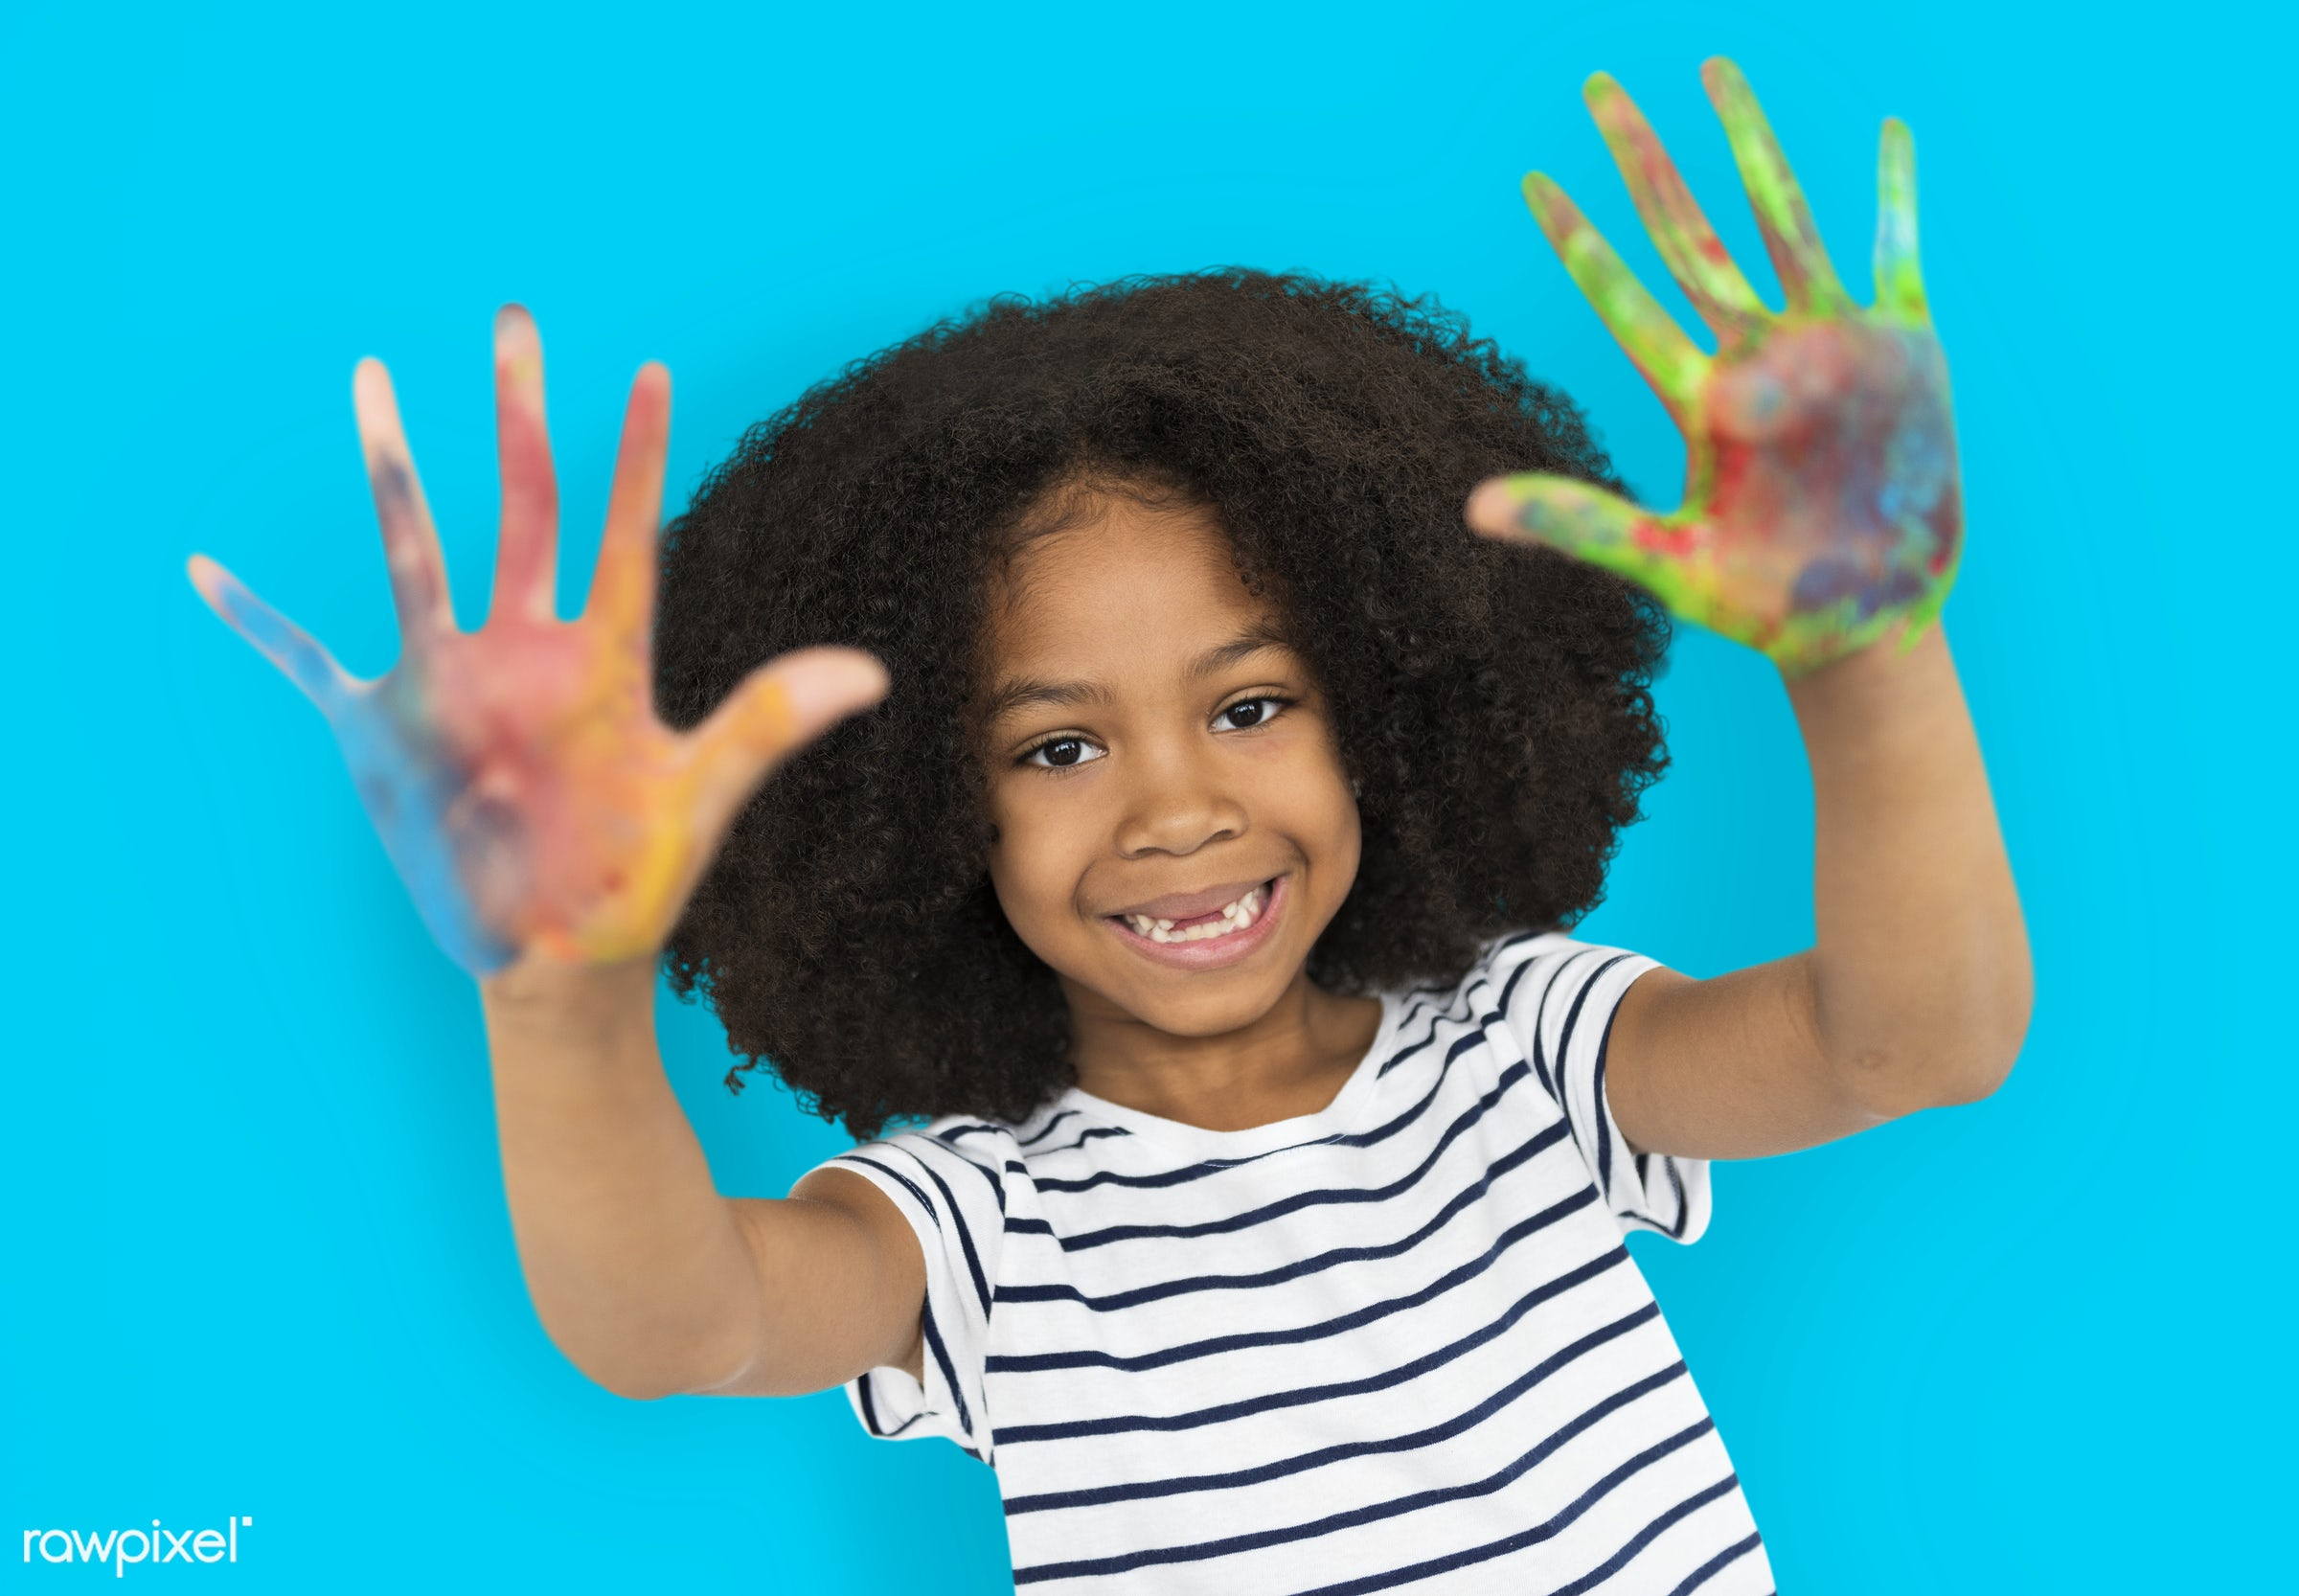 expression, studio, person, little, cute, painted hands, people, drawing, draw, child, girl, happy, casual, smile, cheerful...